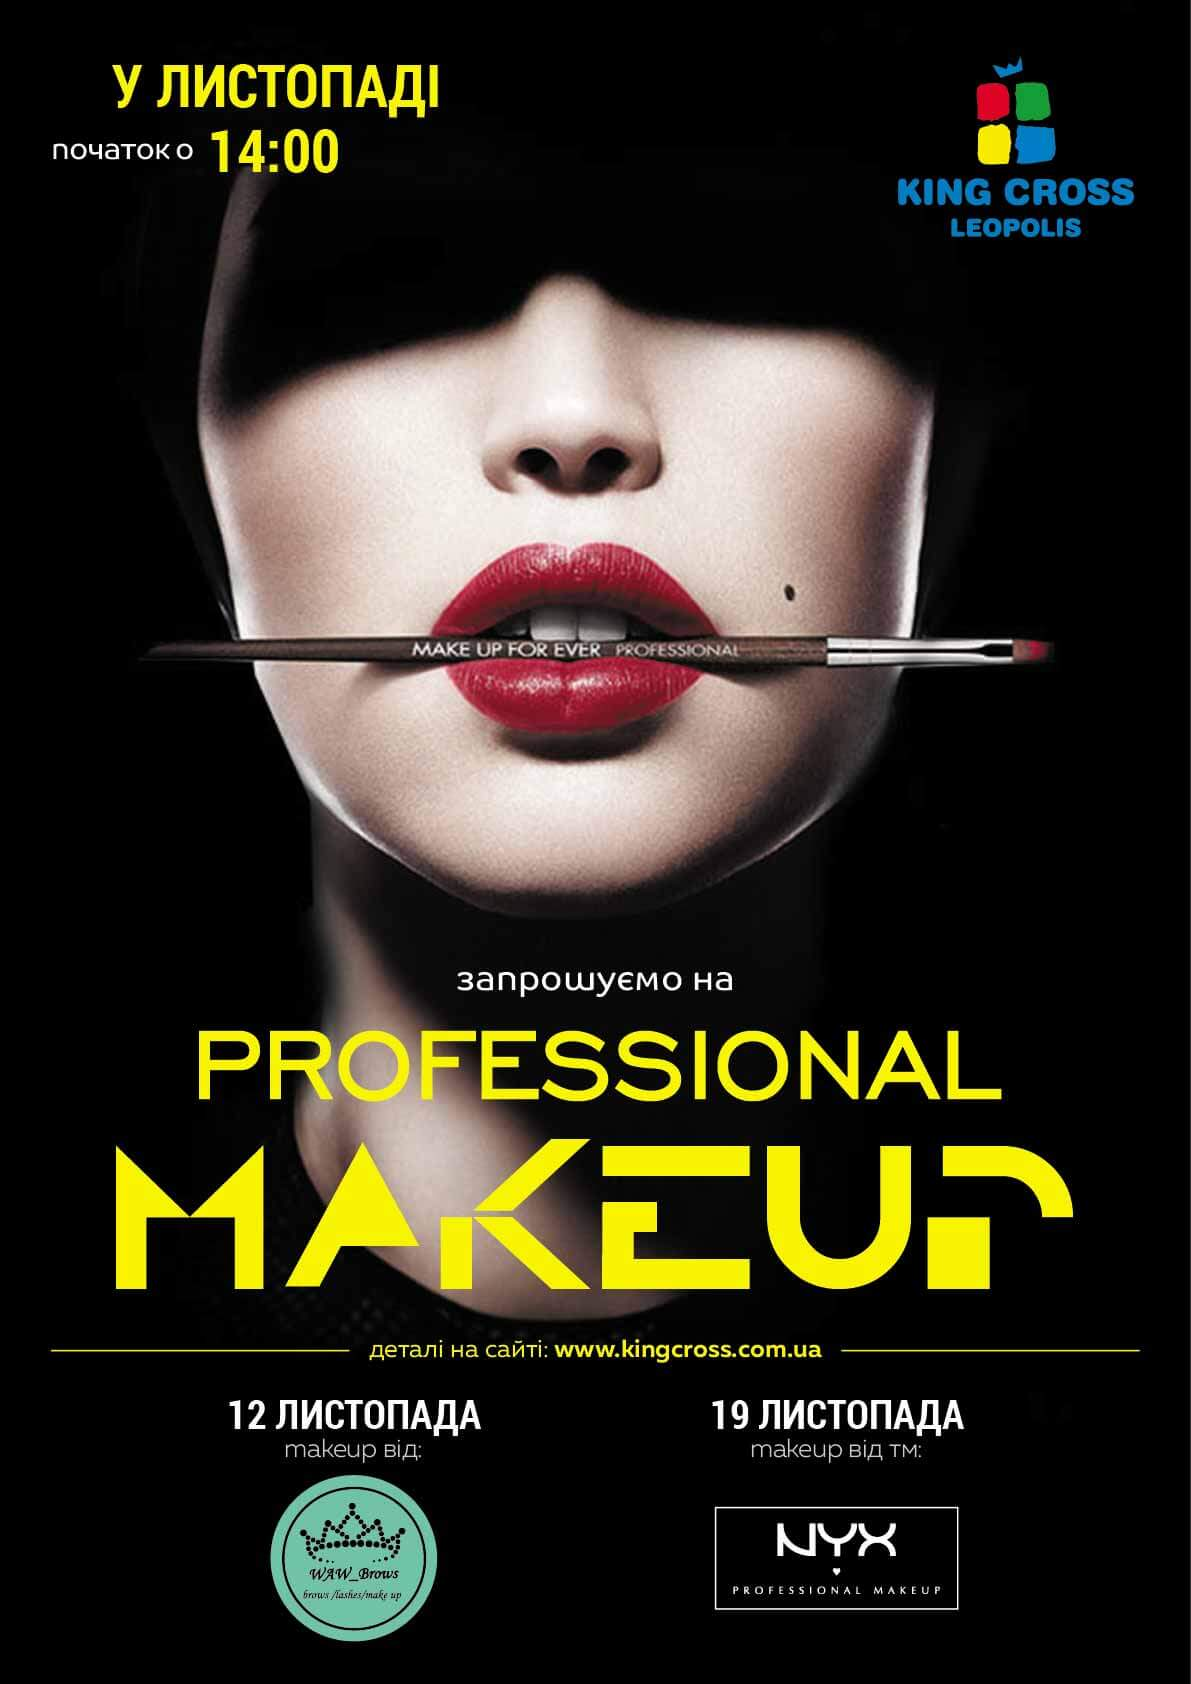 Professional make-up forever!